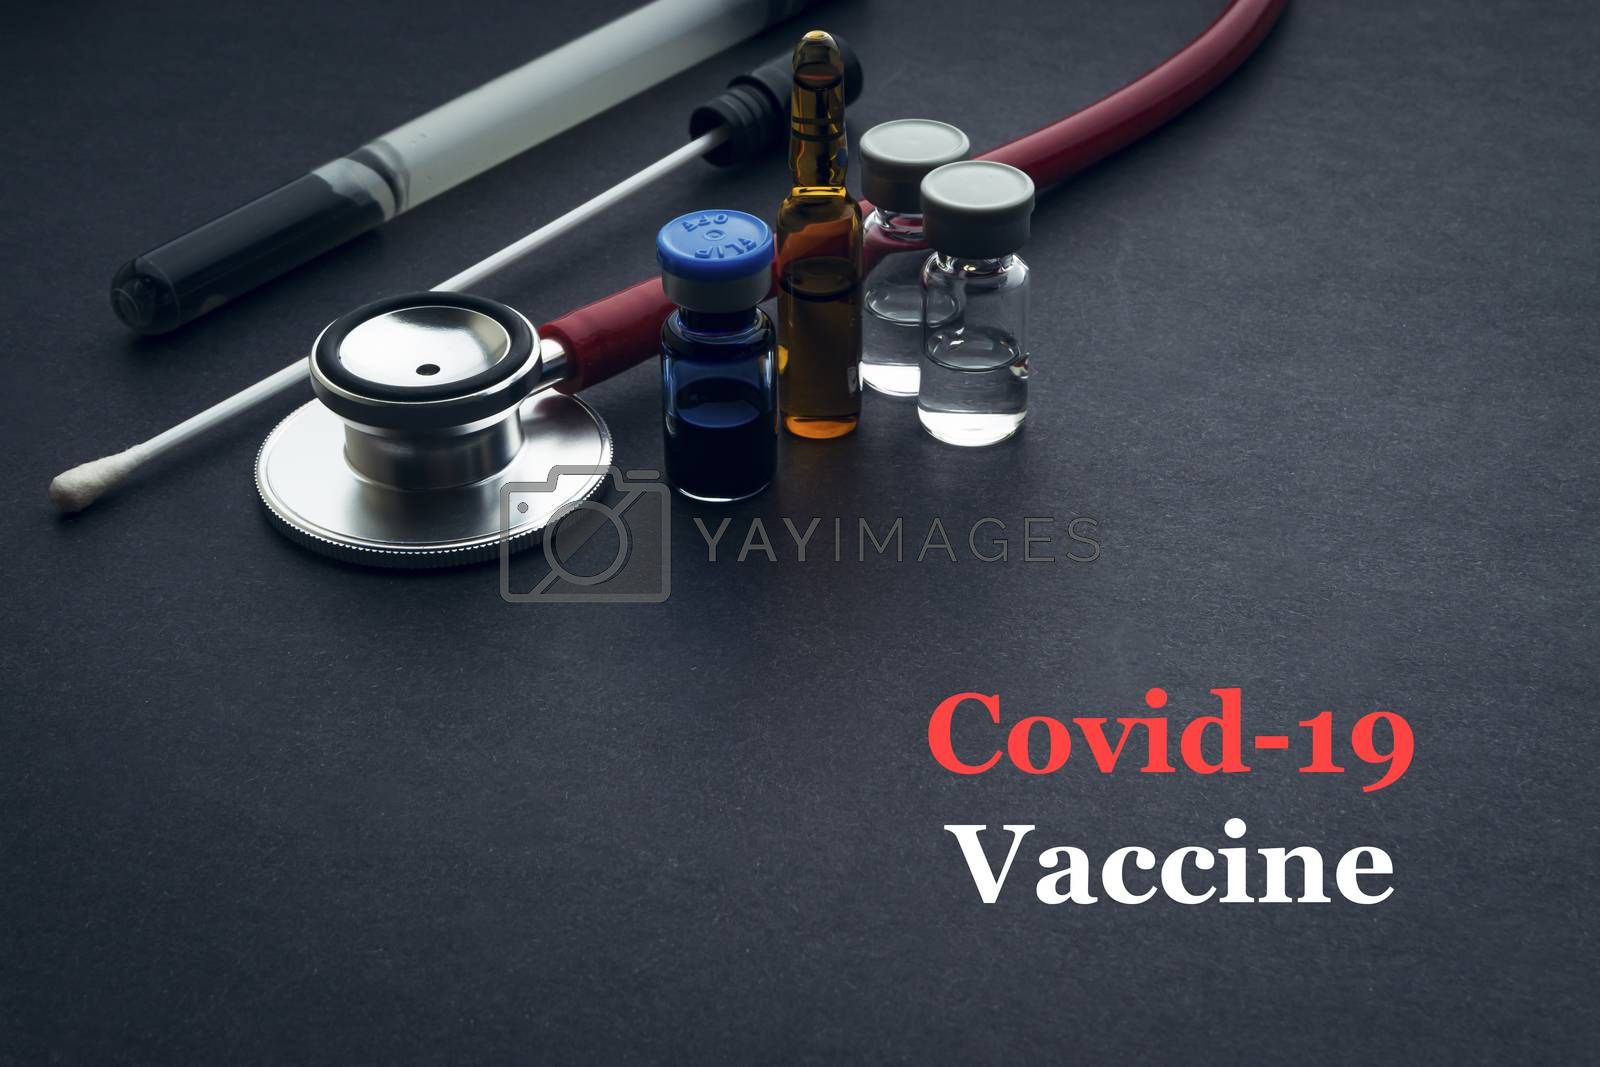 COVID-19 or CORONAVIRUS VACCINE text with stethoscope, medical swab and vial on black background. Covid-19 or Coronavirus concept.